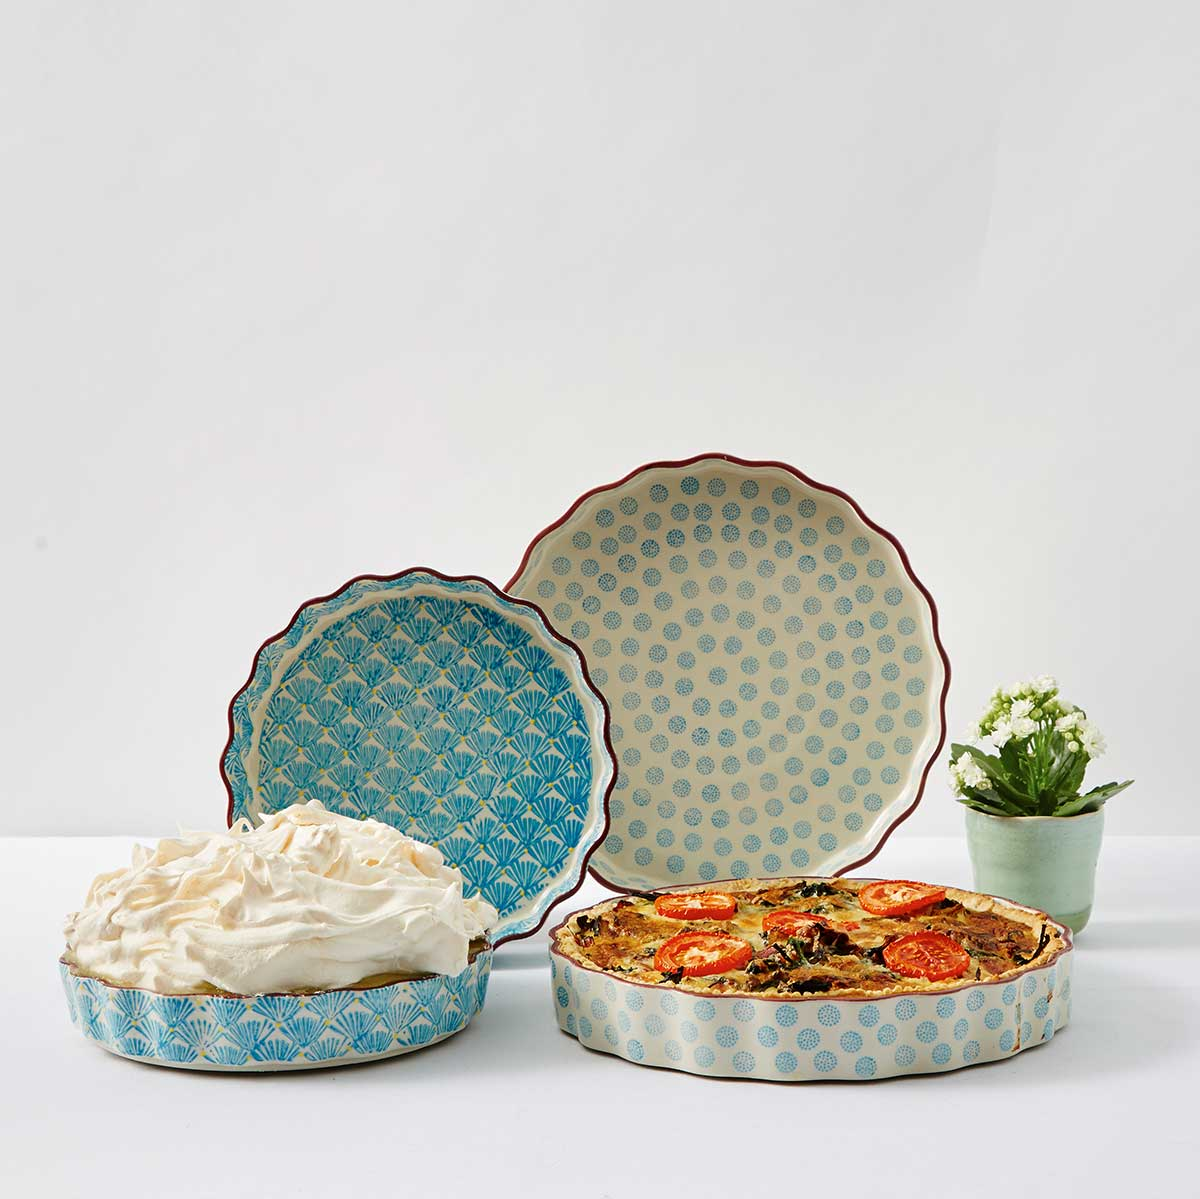 Quiche Tin - Louise - Tableware  - Club Matters - Foodie - Ceramics - Gift Guide - Kitcheware